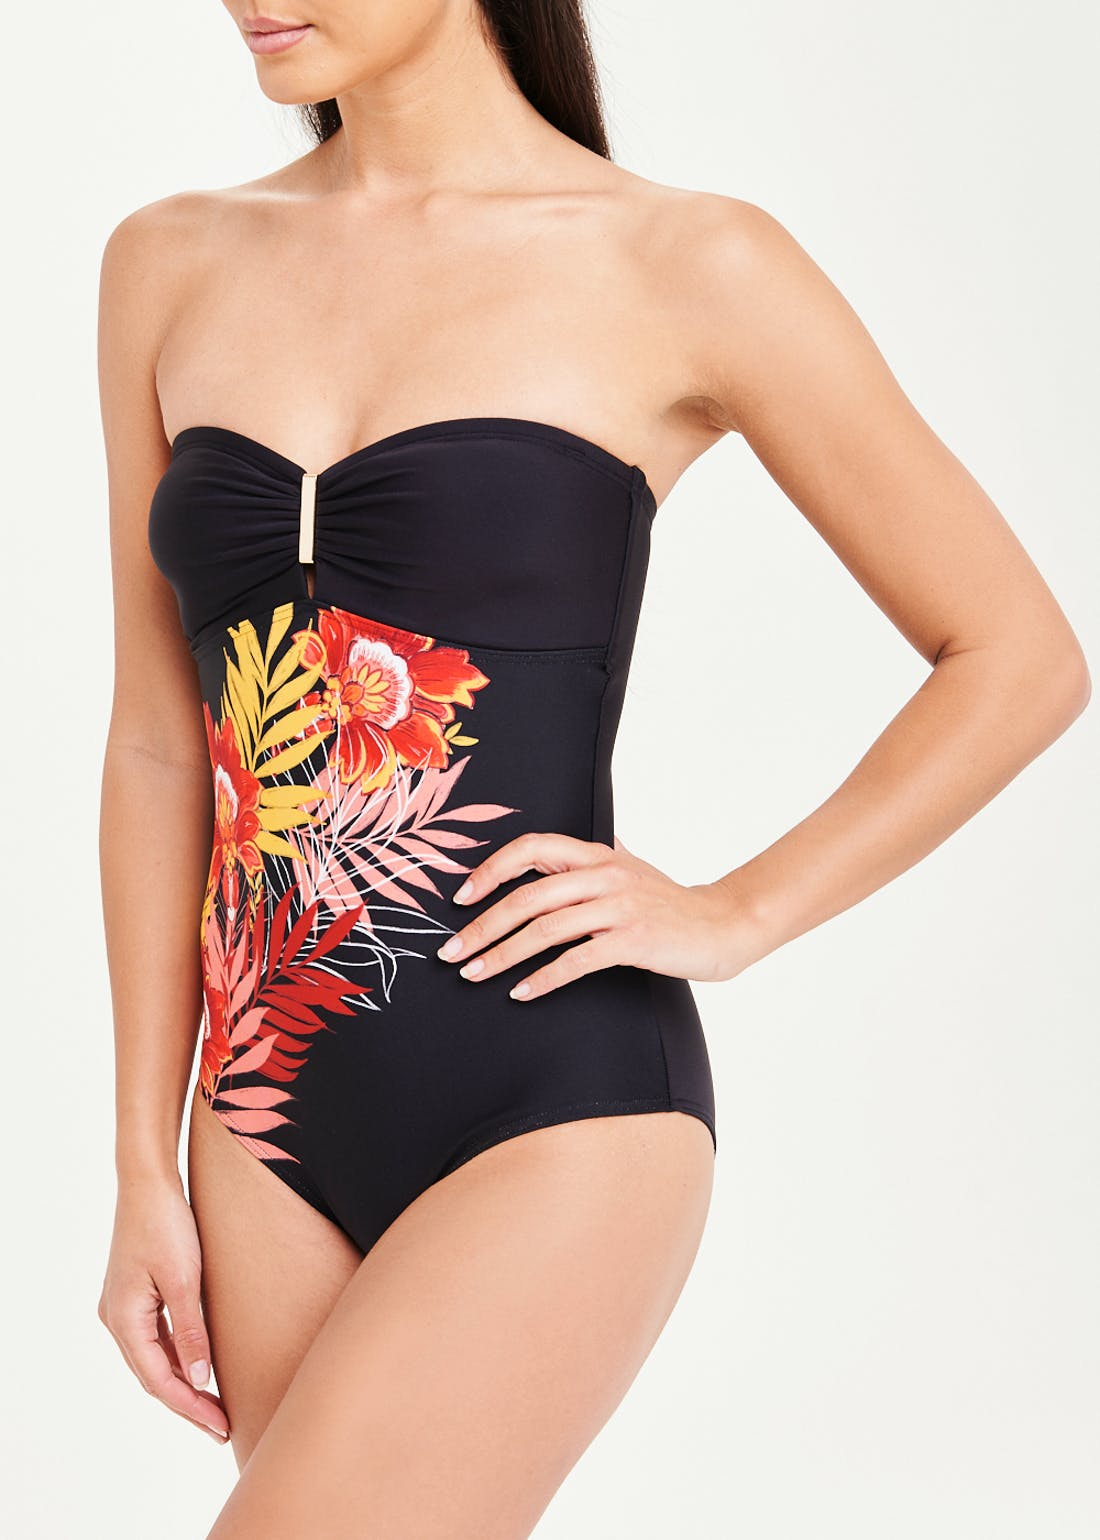 Soon Floral Palm Bandeau Swimsuit